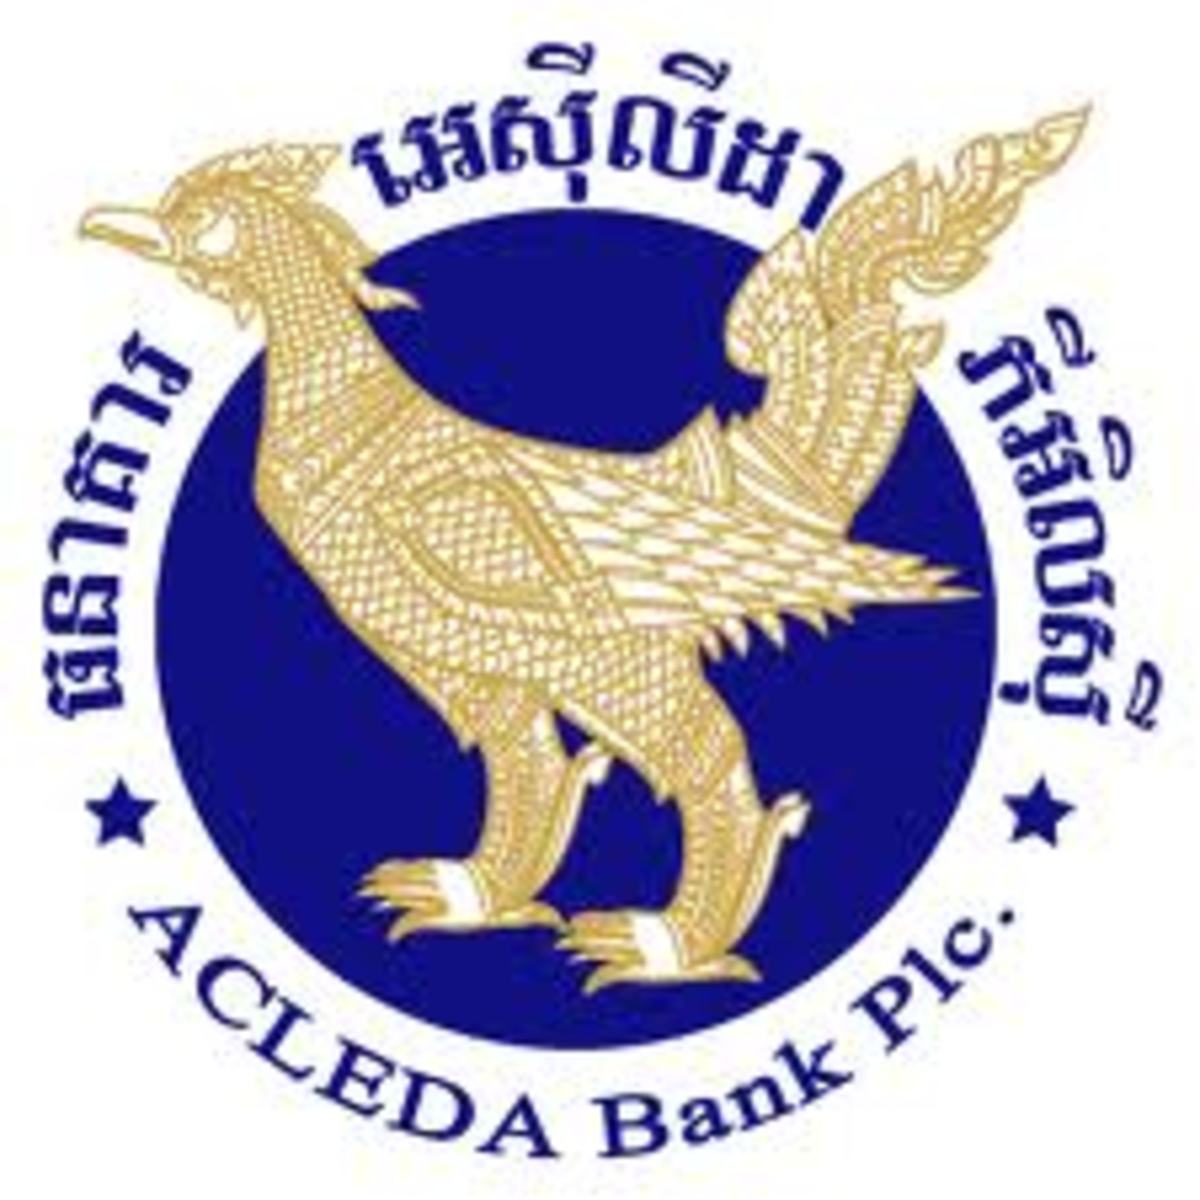 Acleda Bank Logo